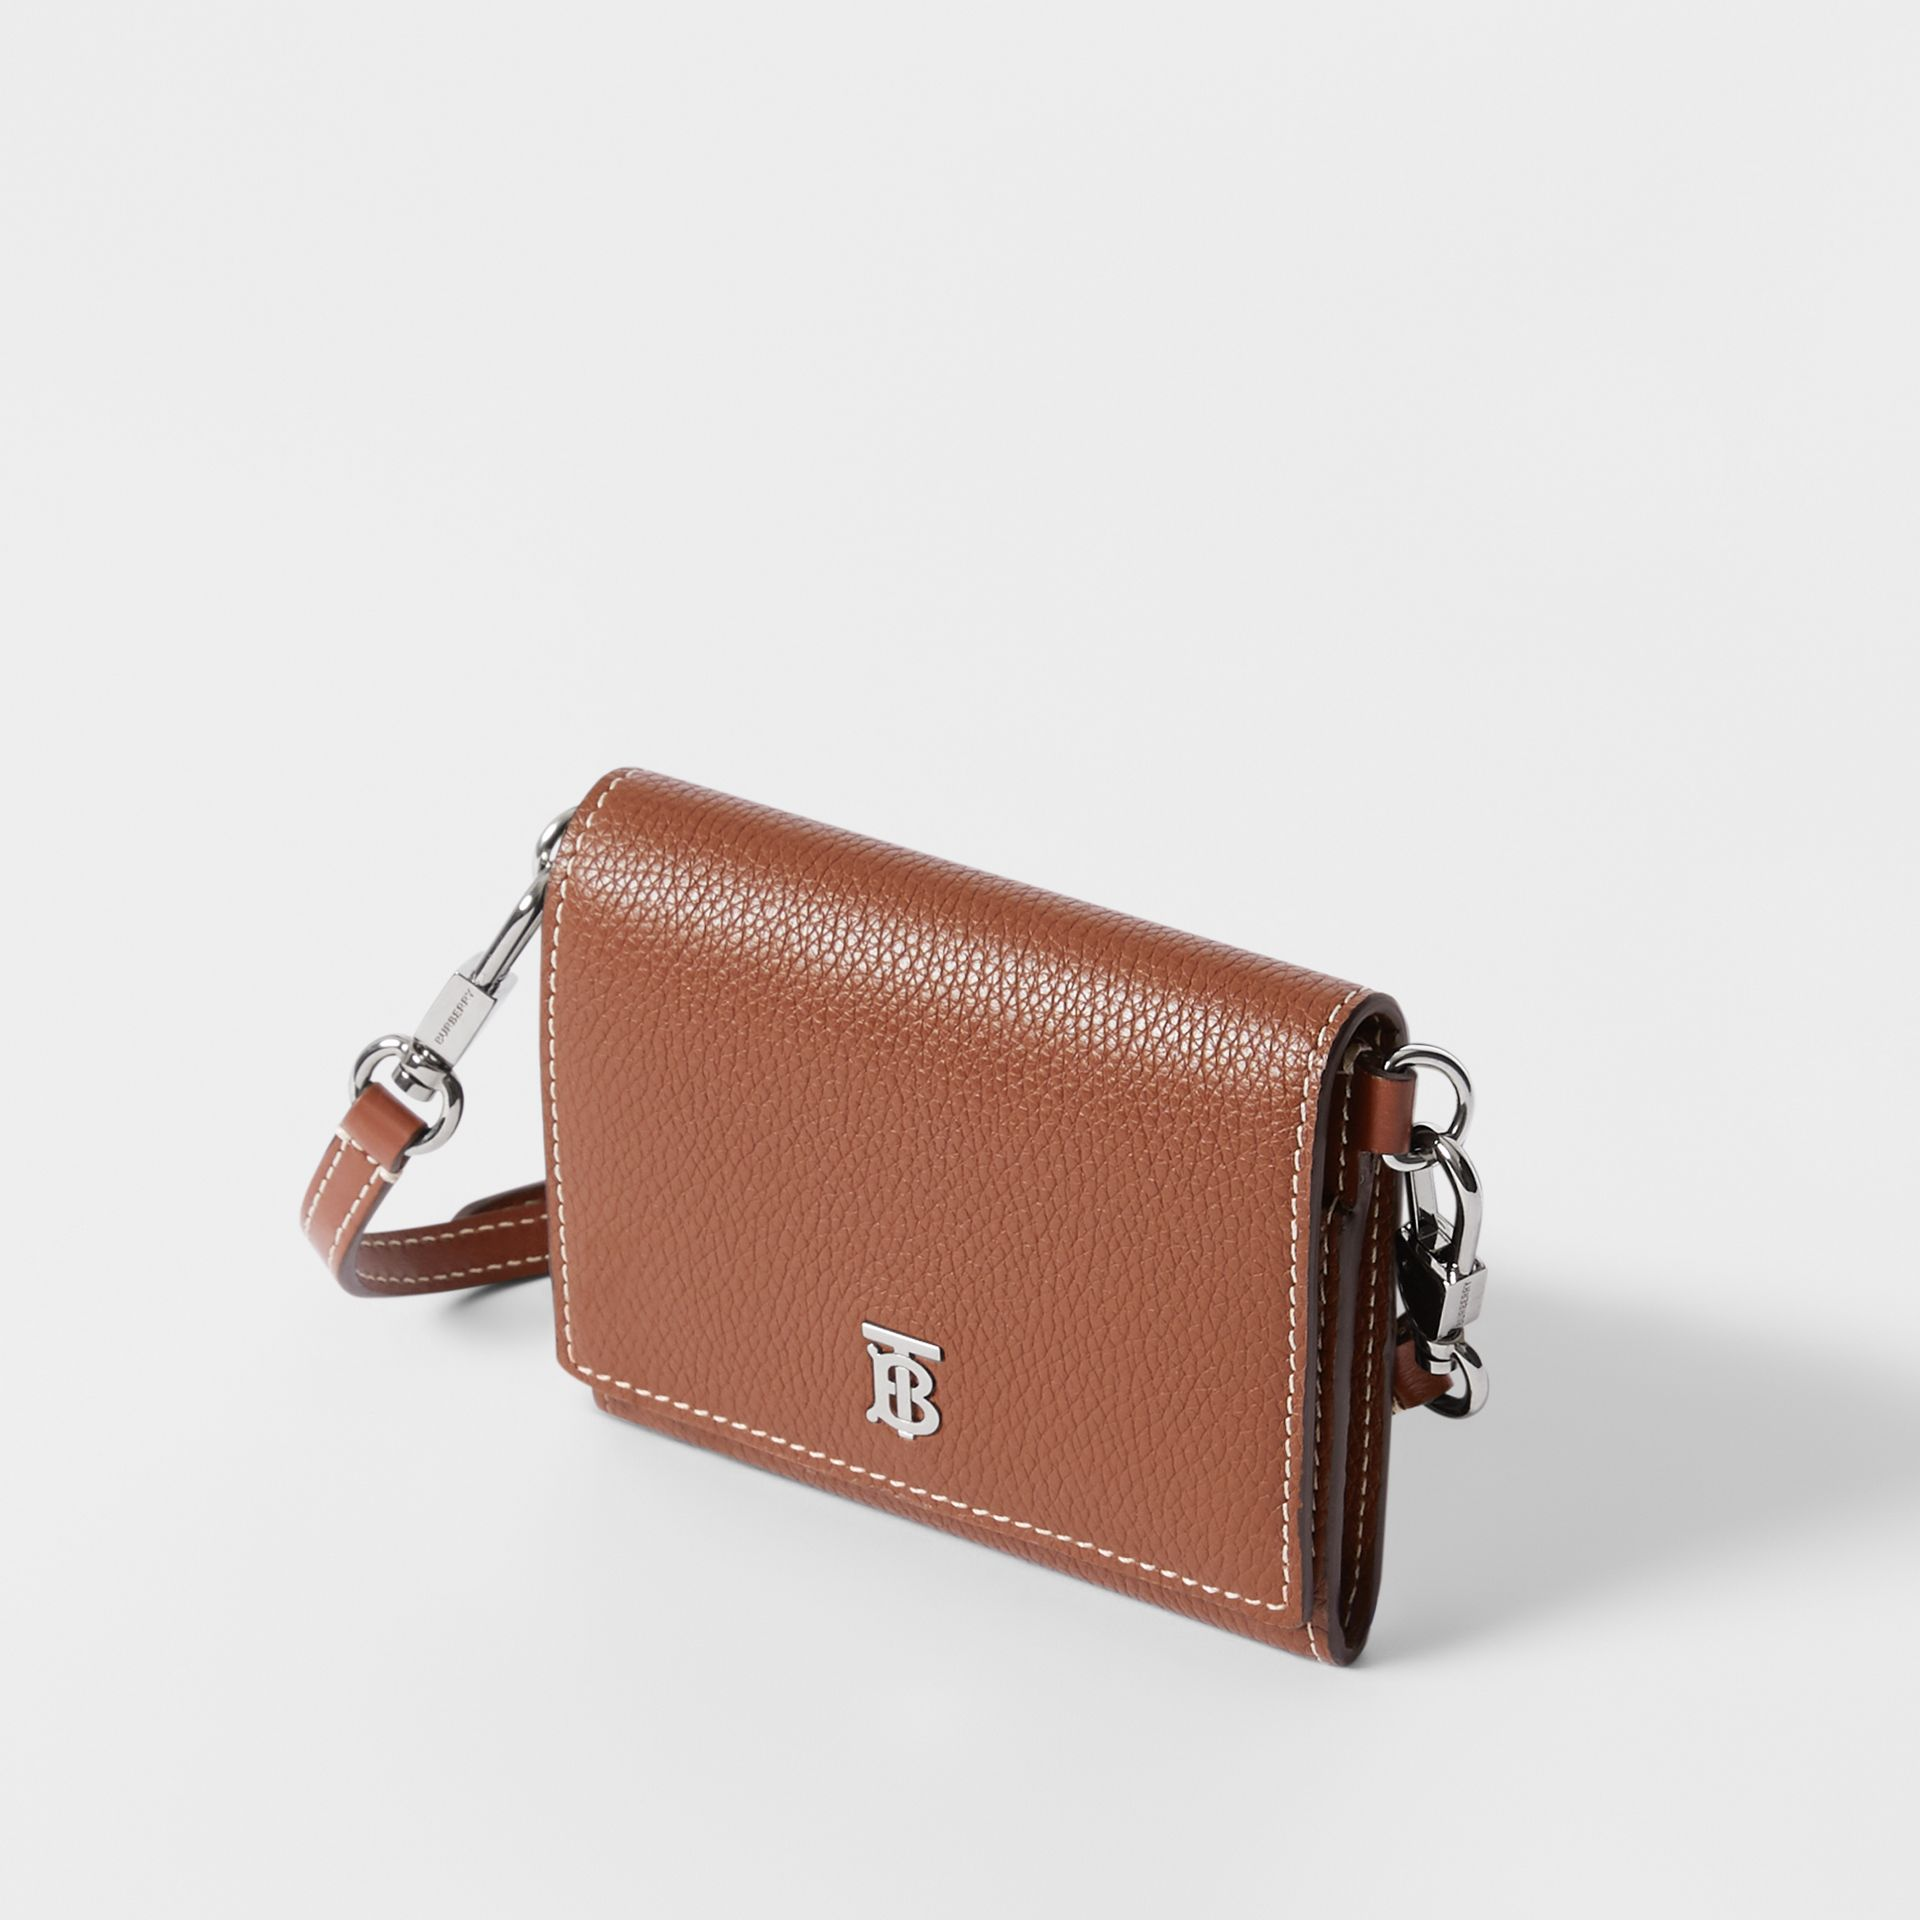 Small Grainy Leather Wallet with Detachable Strap in Tan | Burberry - gallery image 4